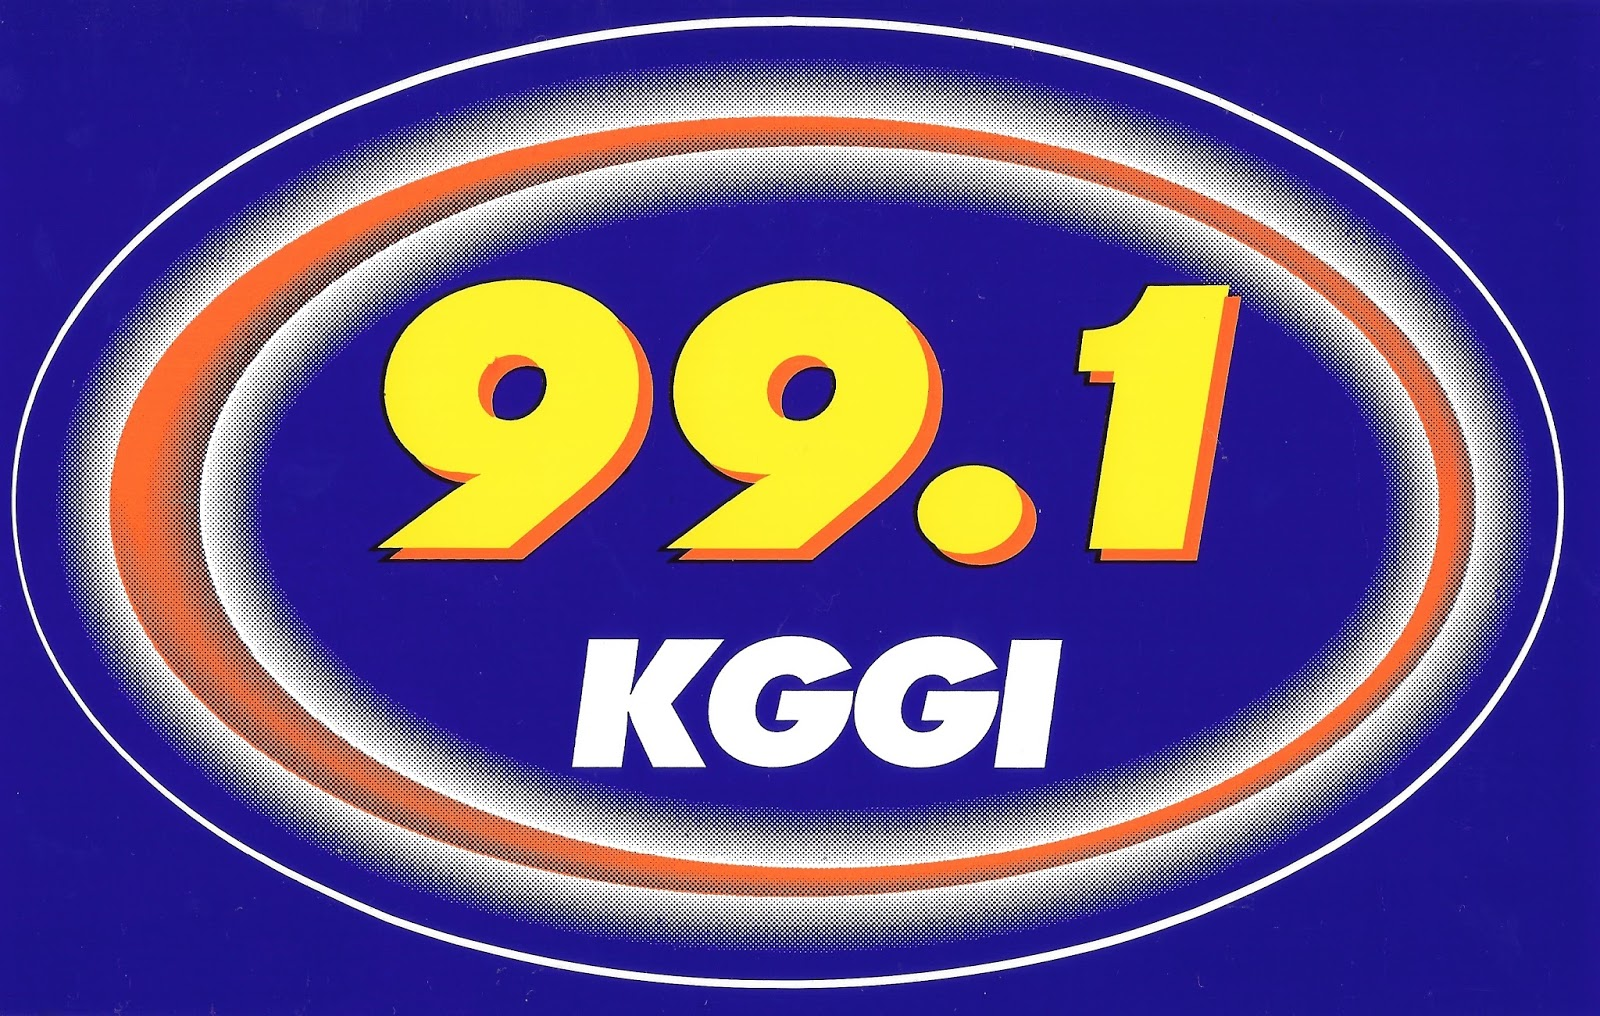 KGGI Has Been A CHR Rhythmic Top 40 Station In Riverside California Since Around 1980 The Call Letters Are Derived From Their Frequency Two Lowercase Gs